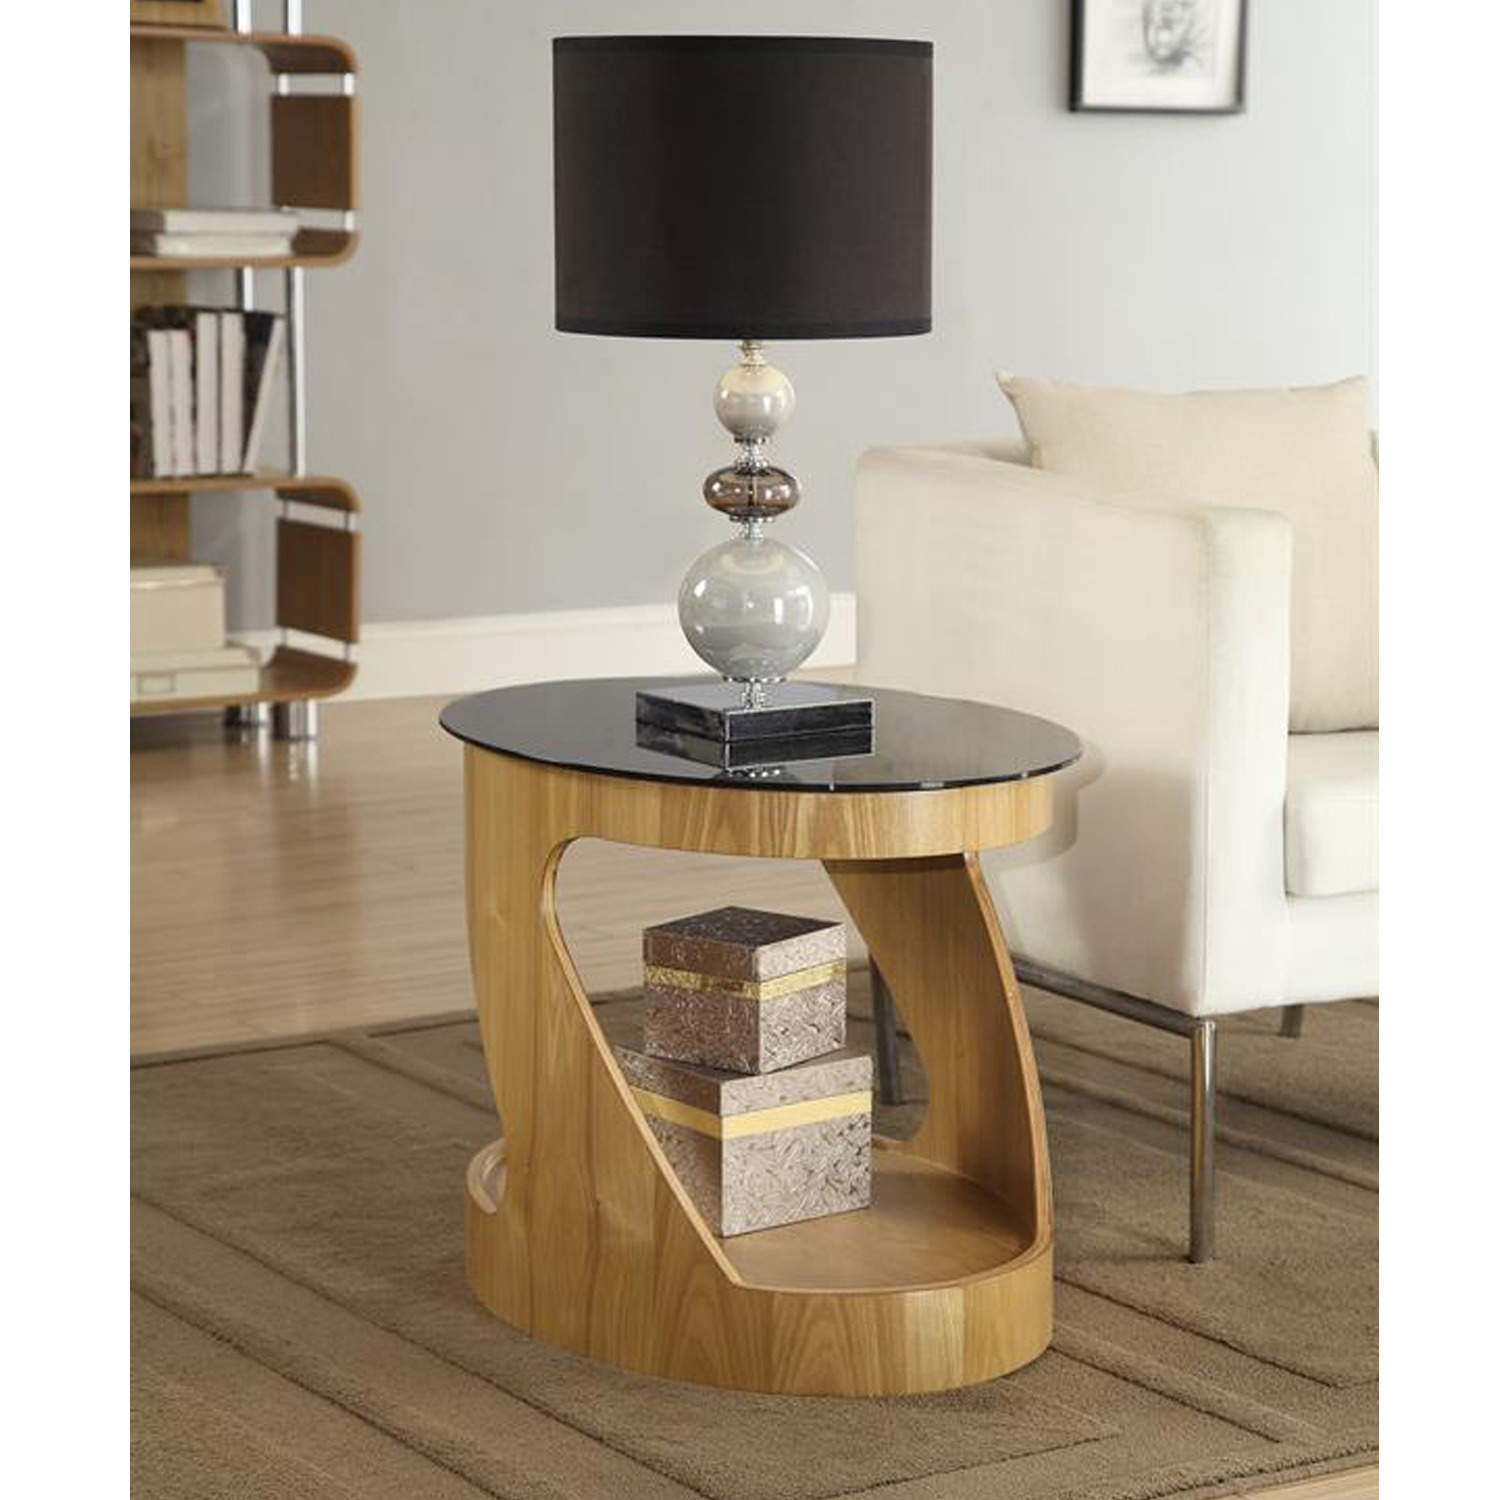 lamp tables jual furnishings curved oak oval lamp table VFOCMHG